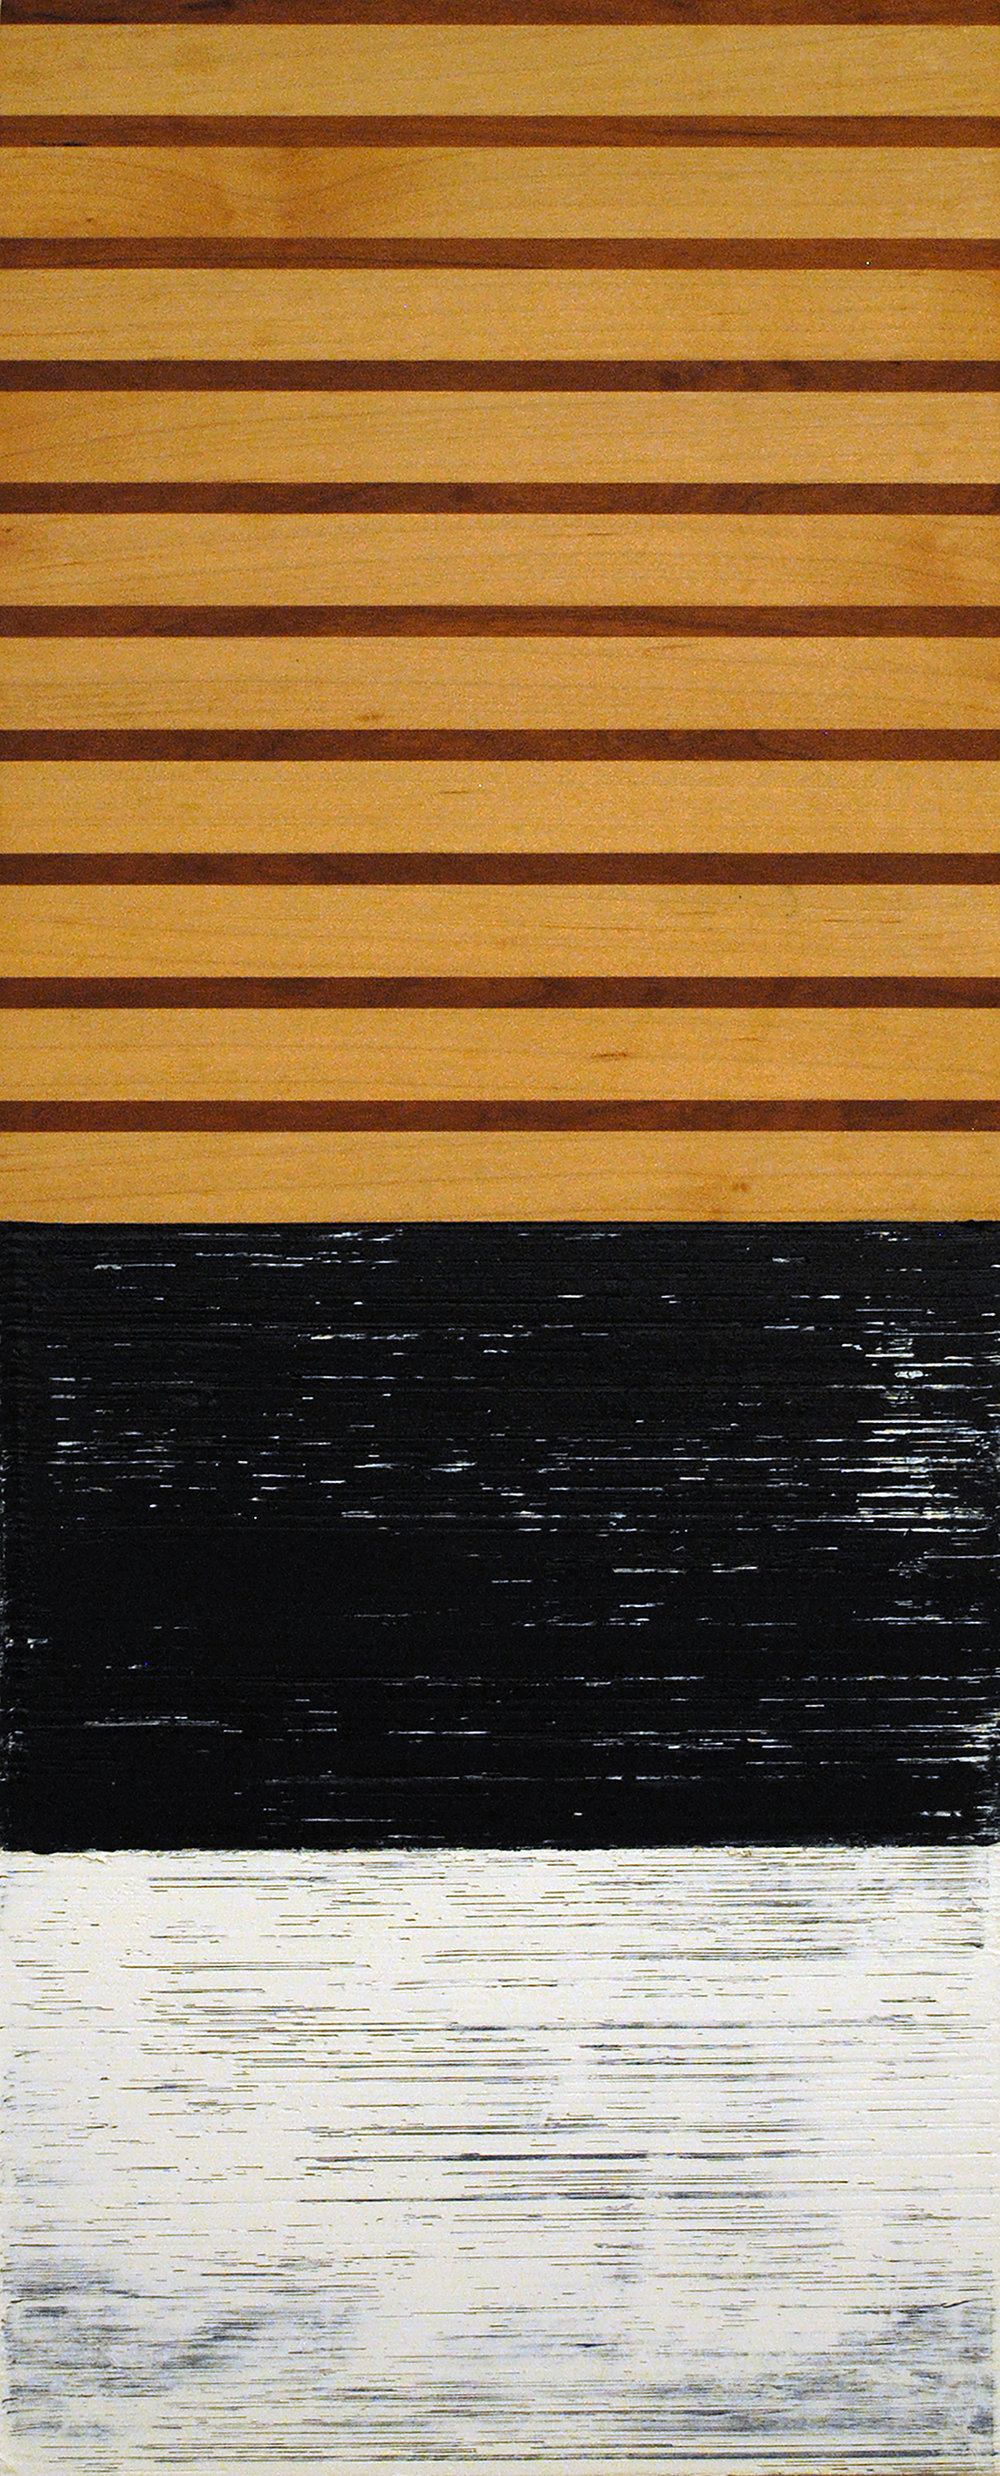 ISIS 33: Over, Under, Sideways, Down, 2015, Oil on panel, laminated cherry and maple wood, 19.75 x 8 x 2 inches.